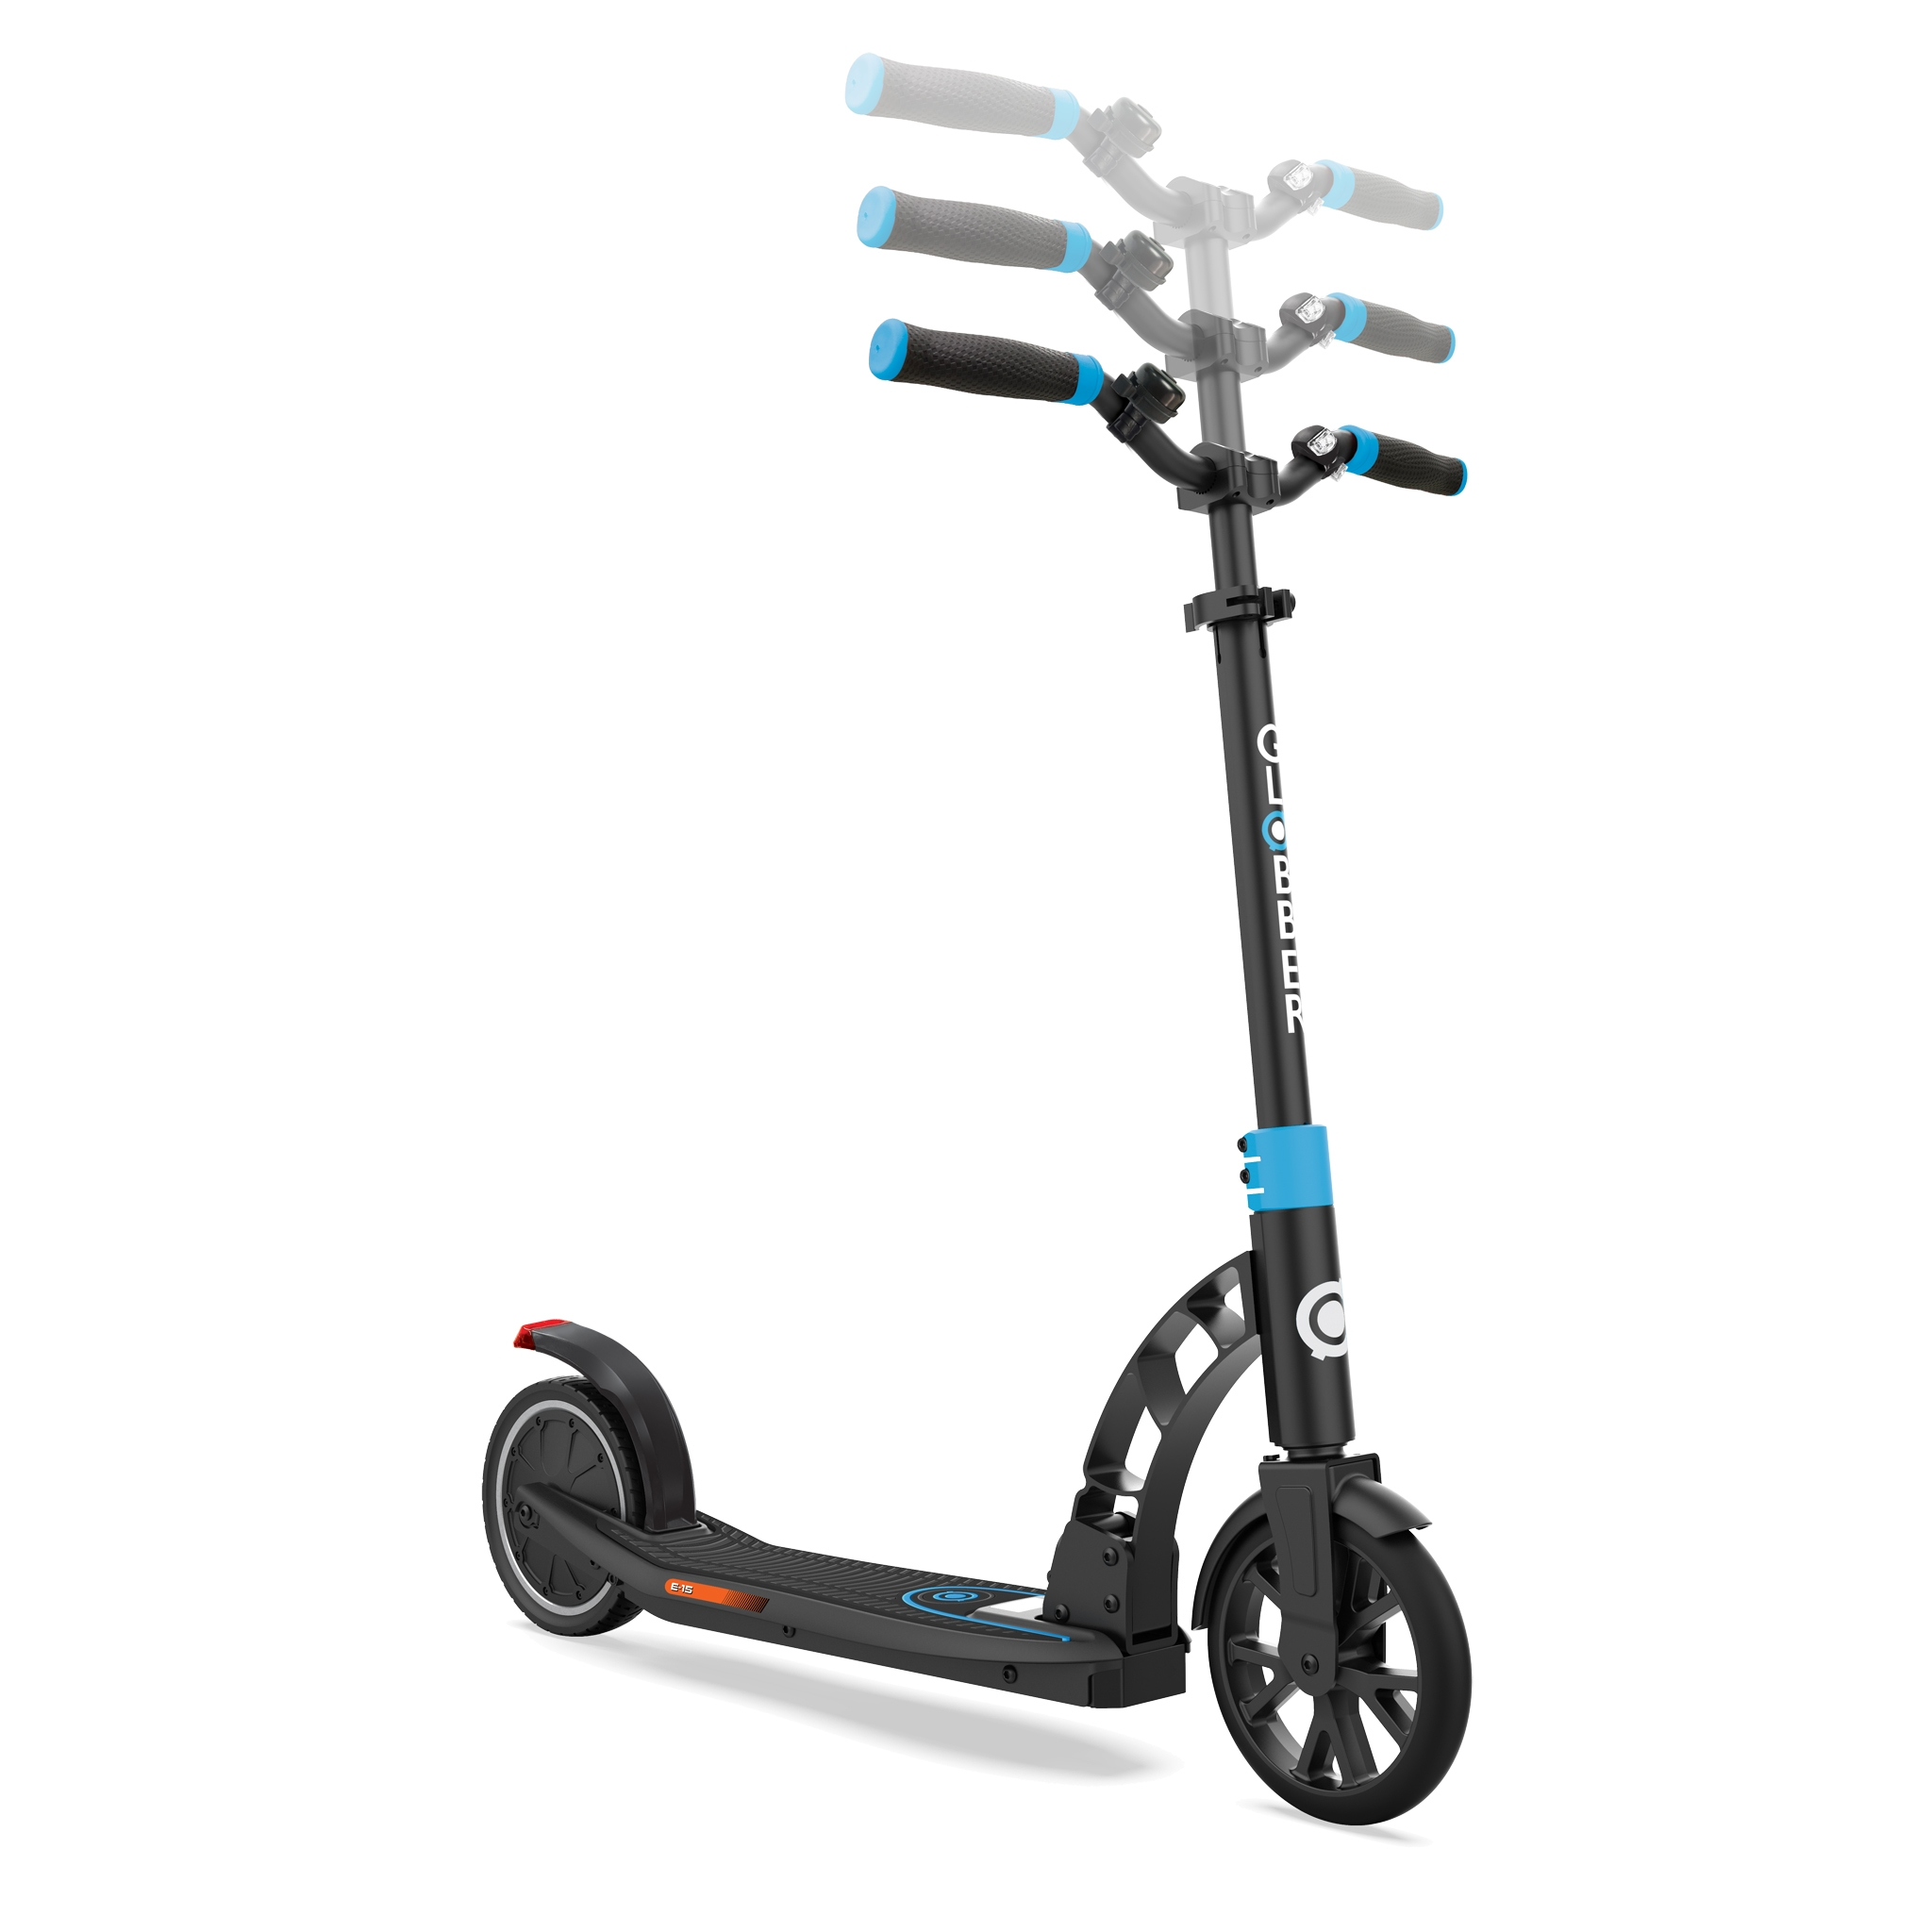 Globber-ONE-K-E-MOTION-15-foldable-electric-scooter-for-teens-and-young-adults-aged-14+-adjustable-e-scooter-sky-blue